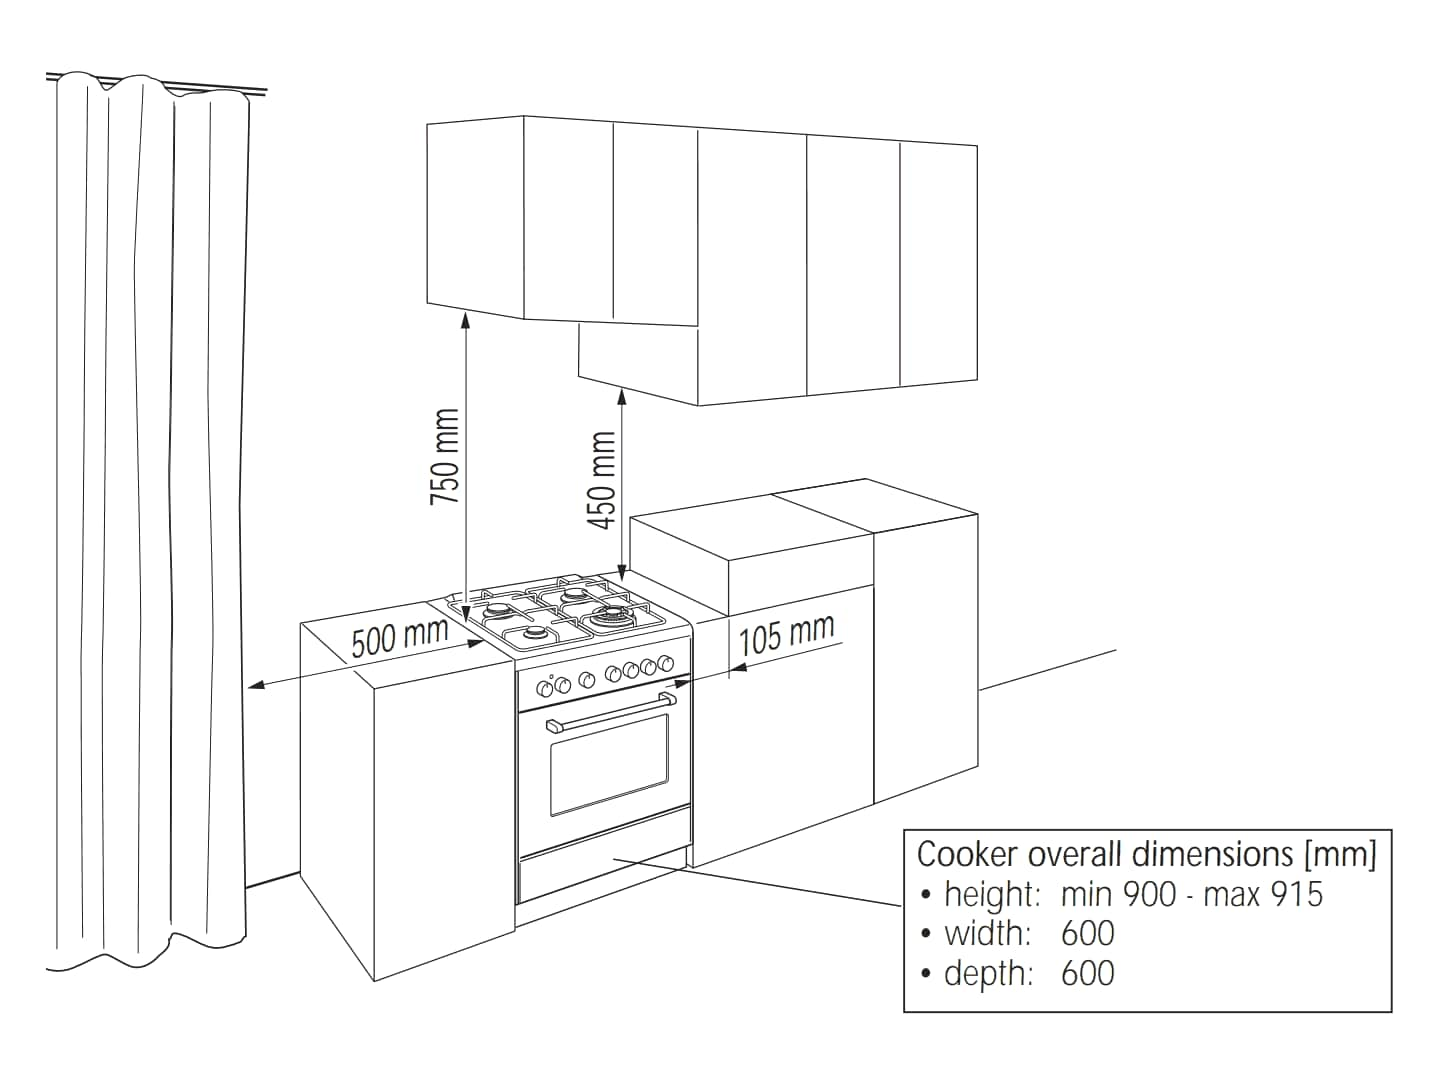 Upright Oven DEF605GW - Installation Diagram